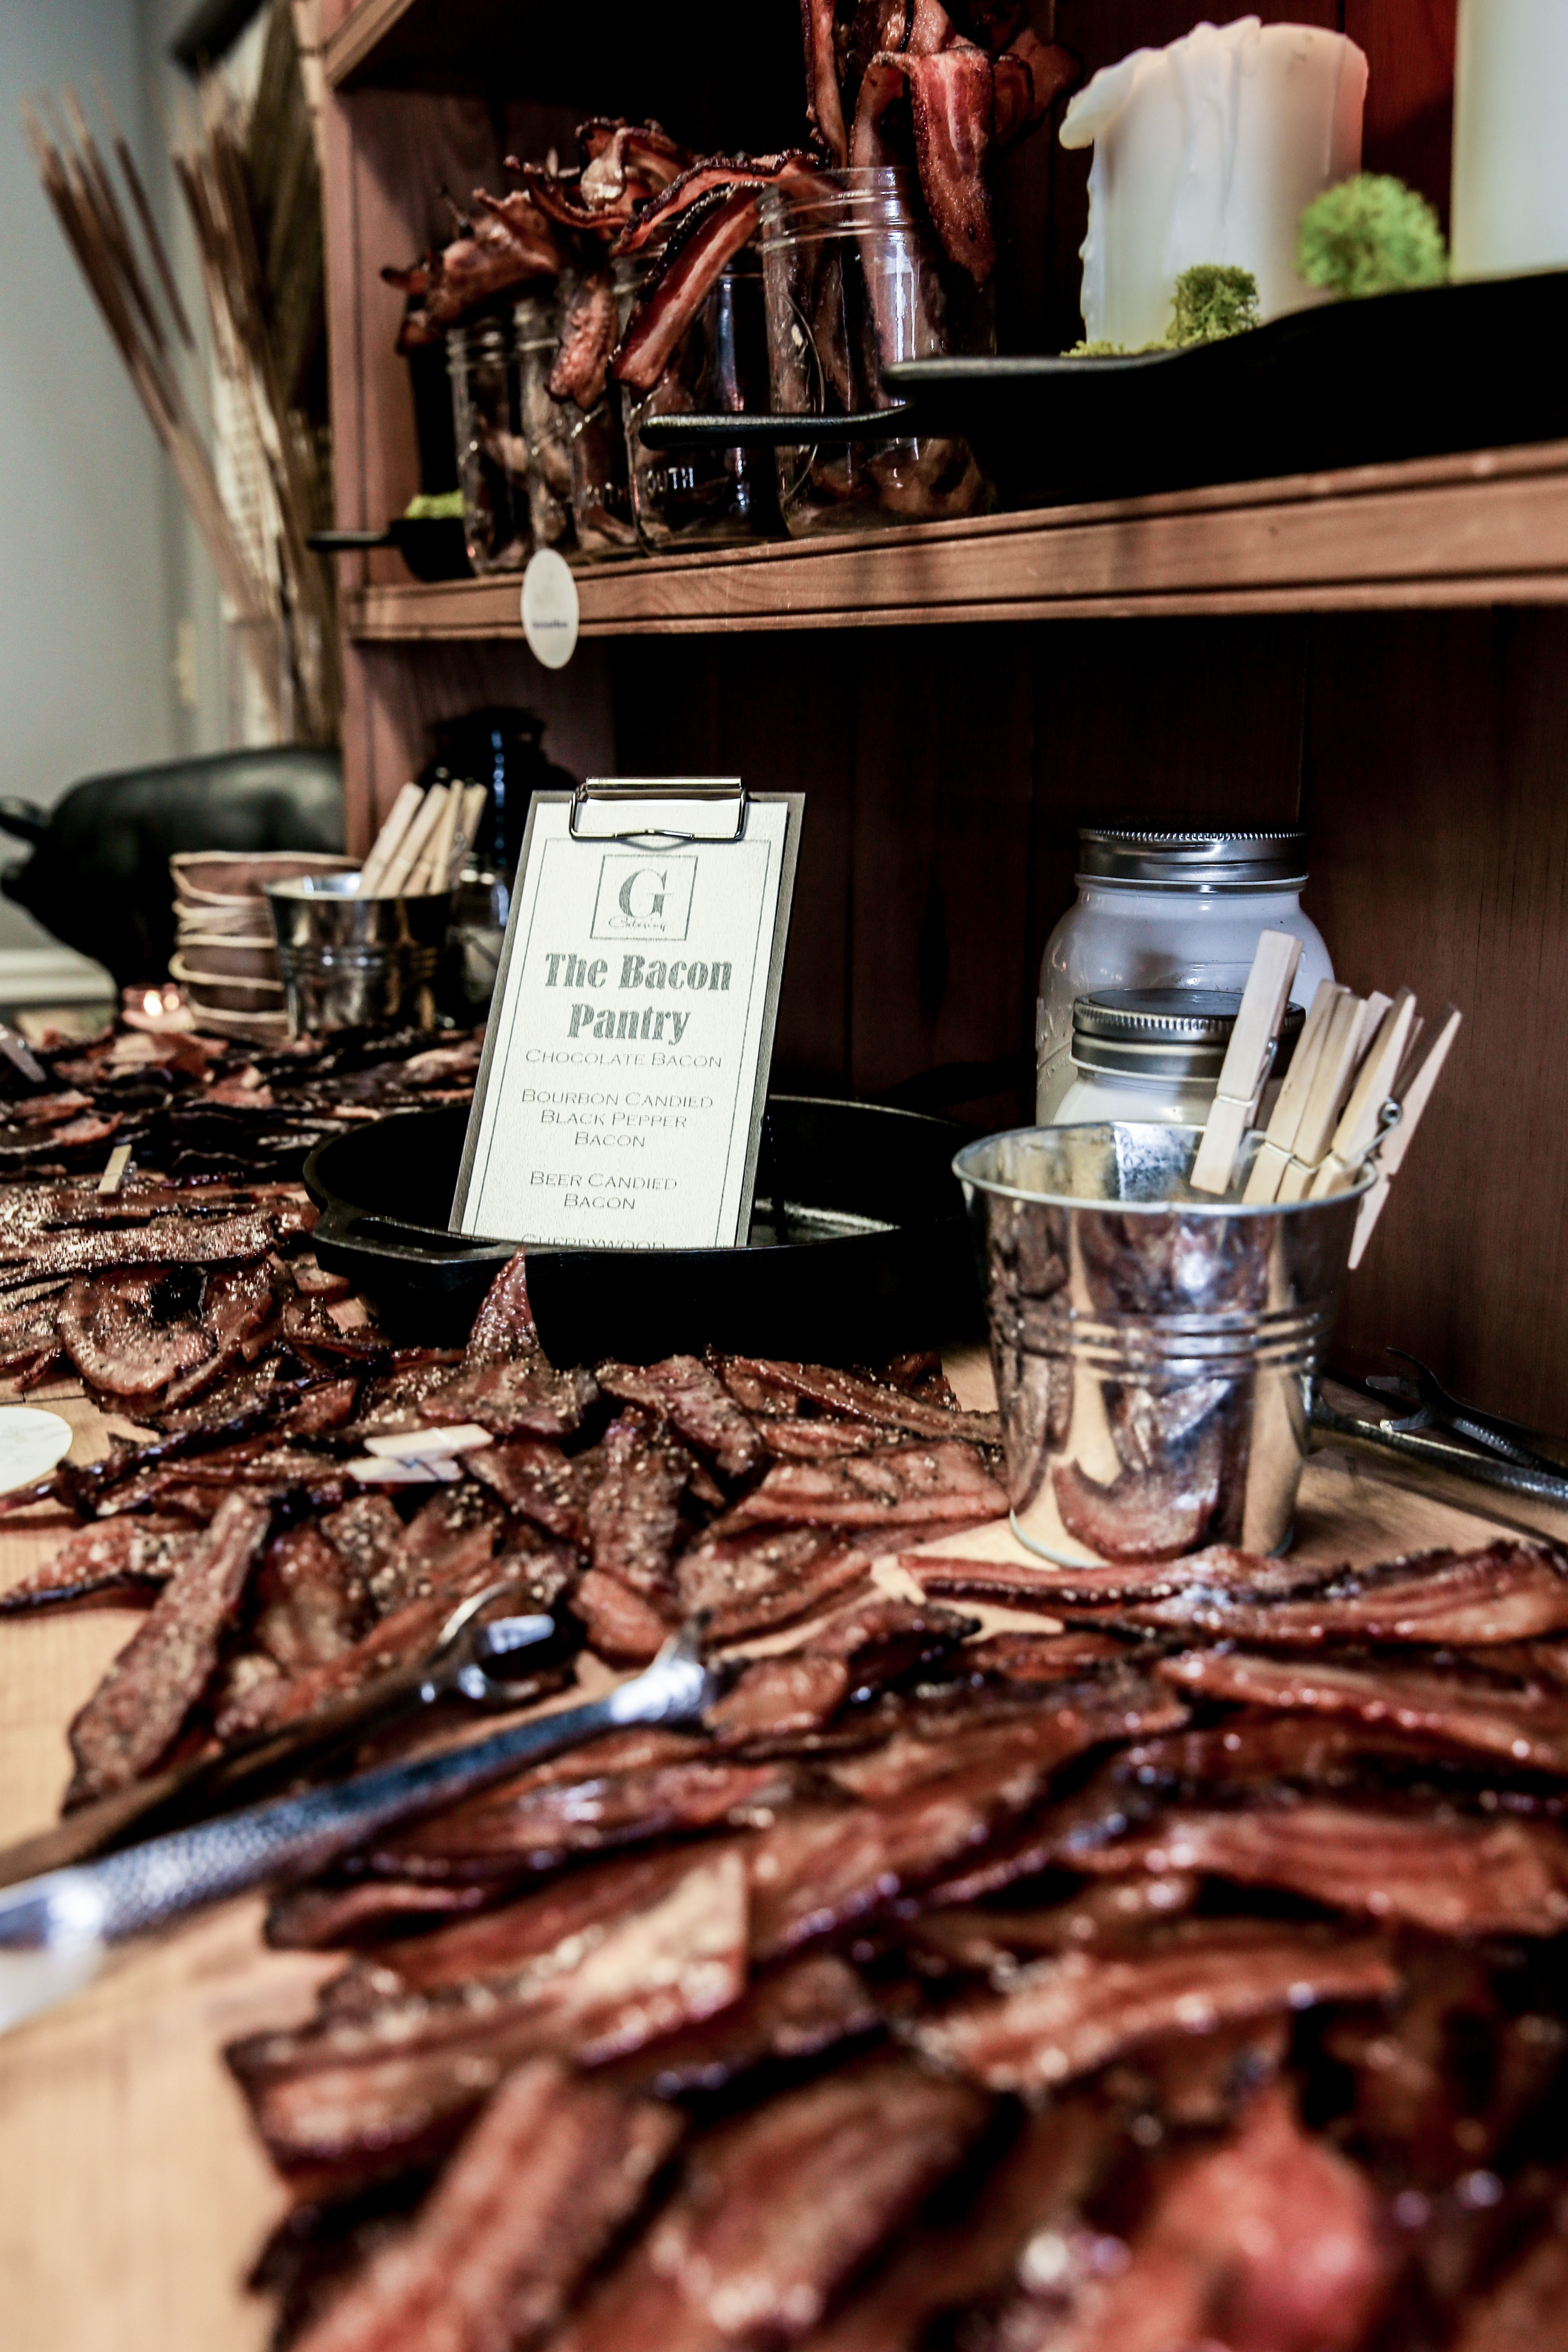 Bacon bar photo cred red hare photography food